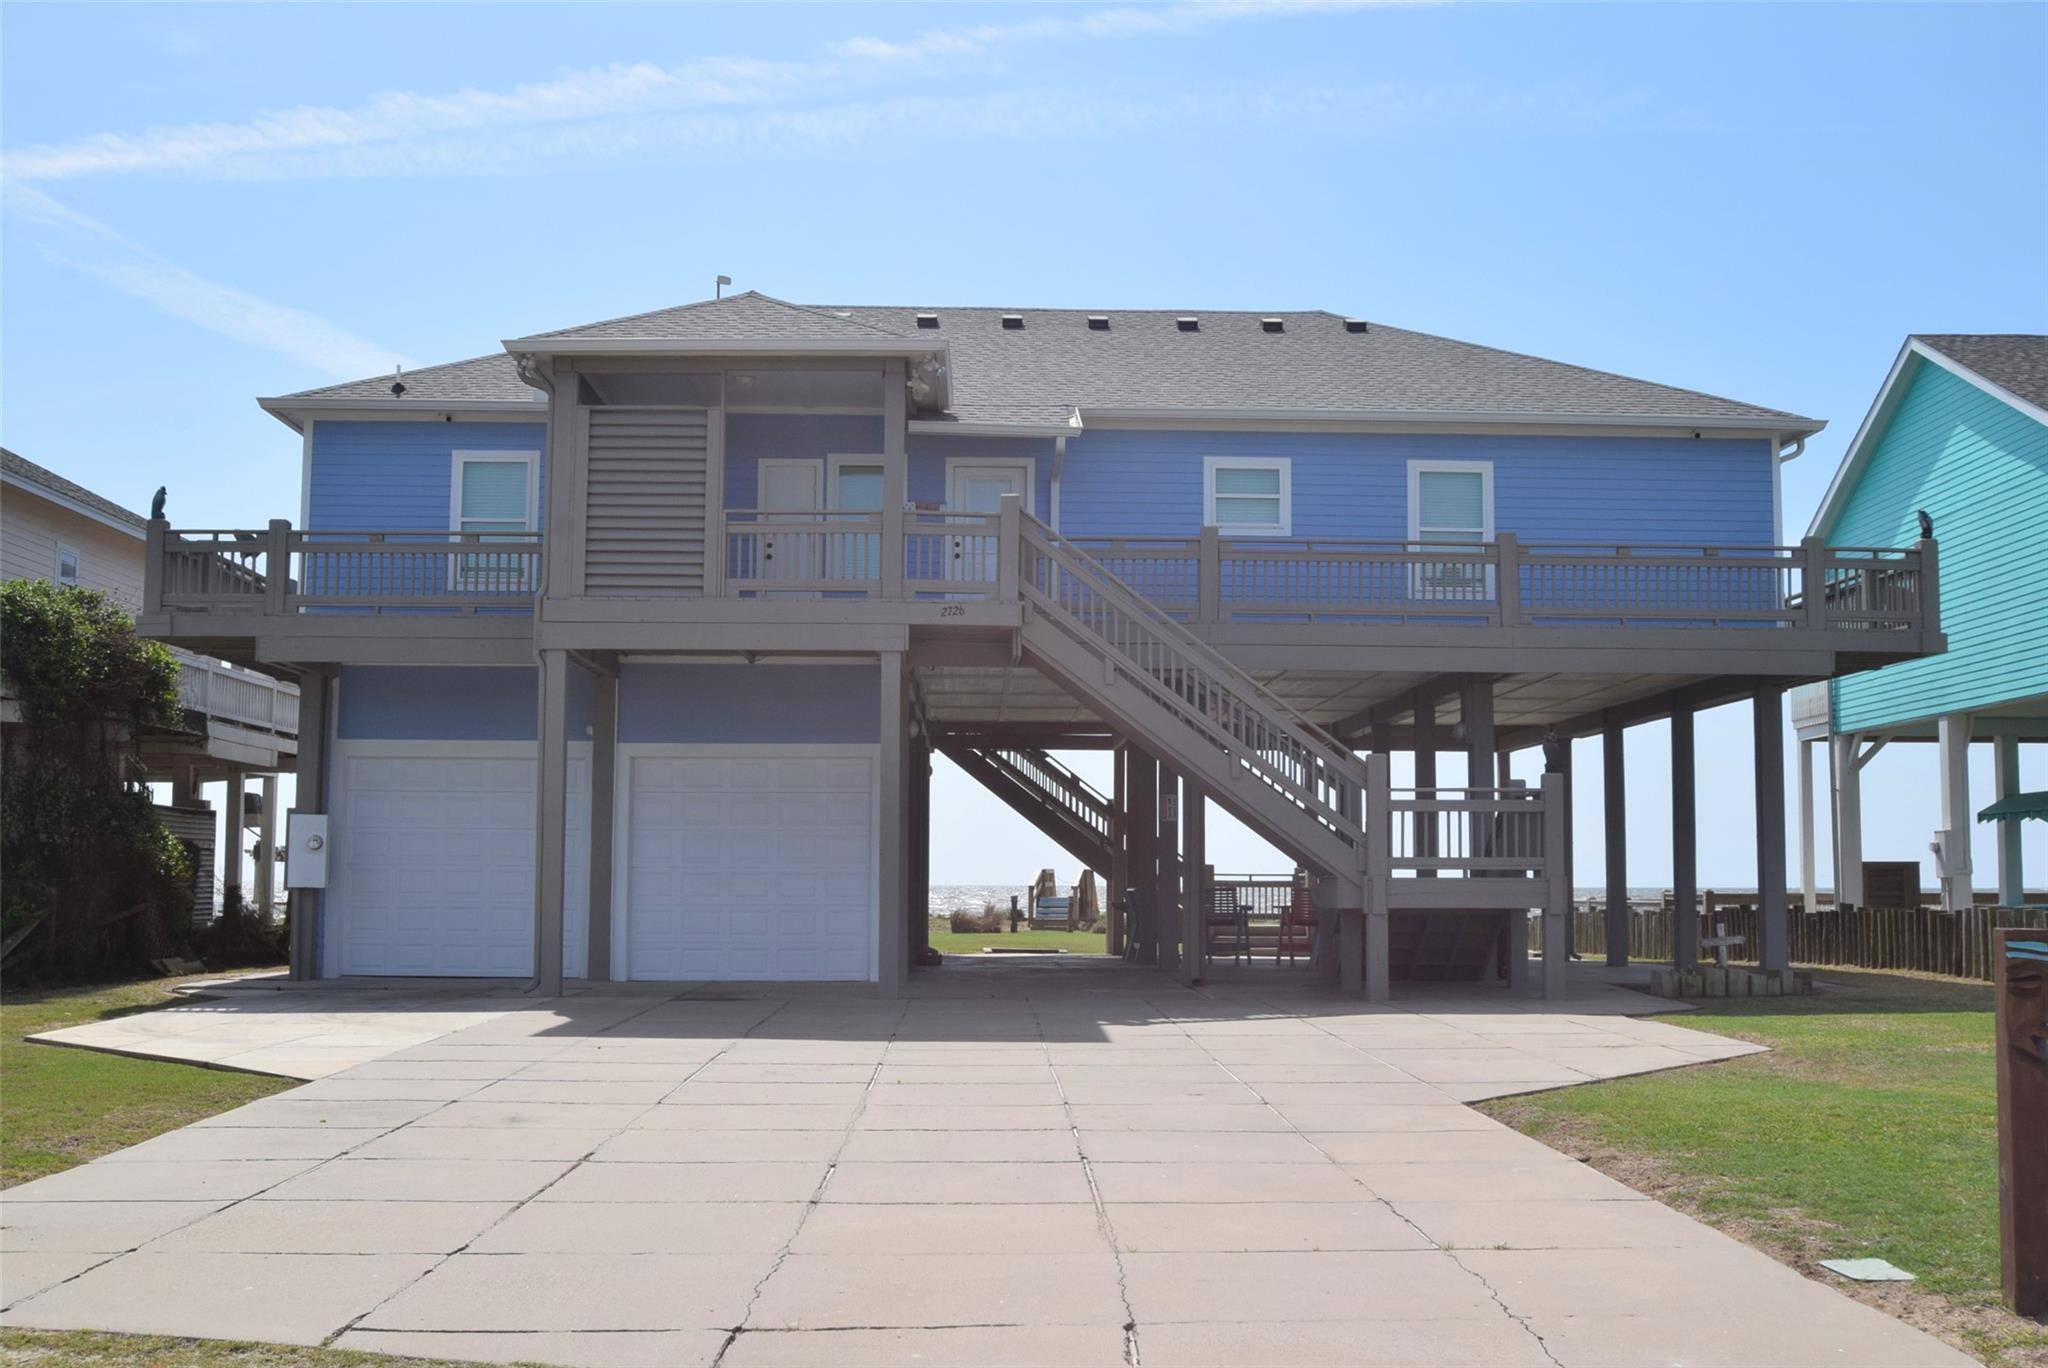 2726 Gillespie Property Photo - Crystal Beach, TX real estate listing